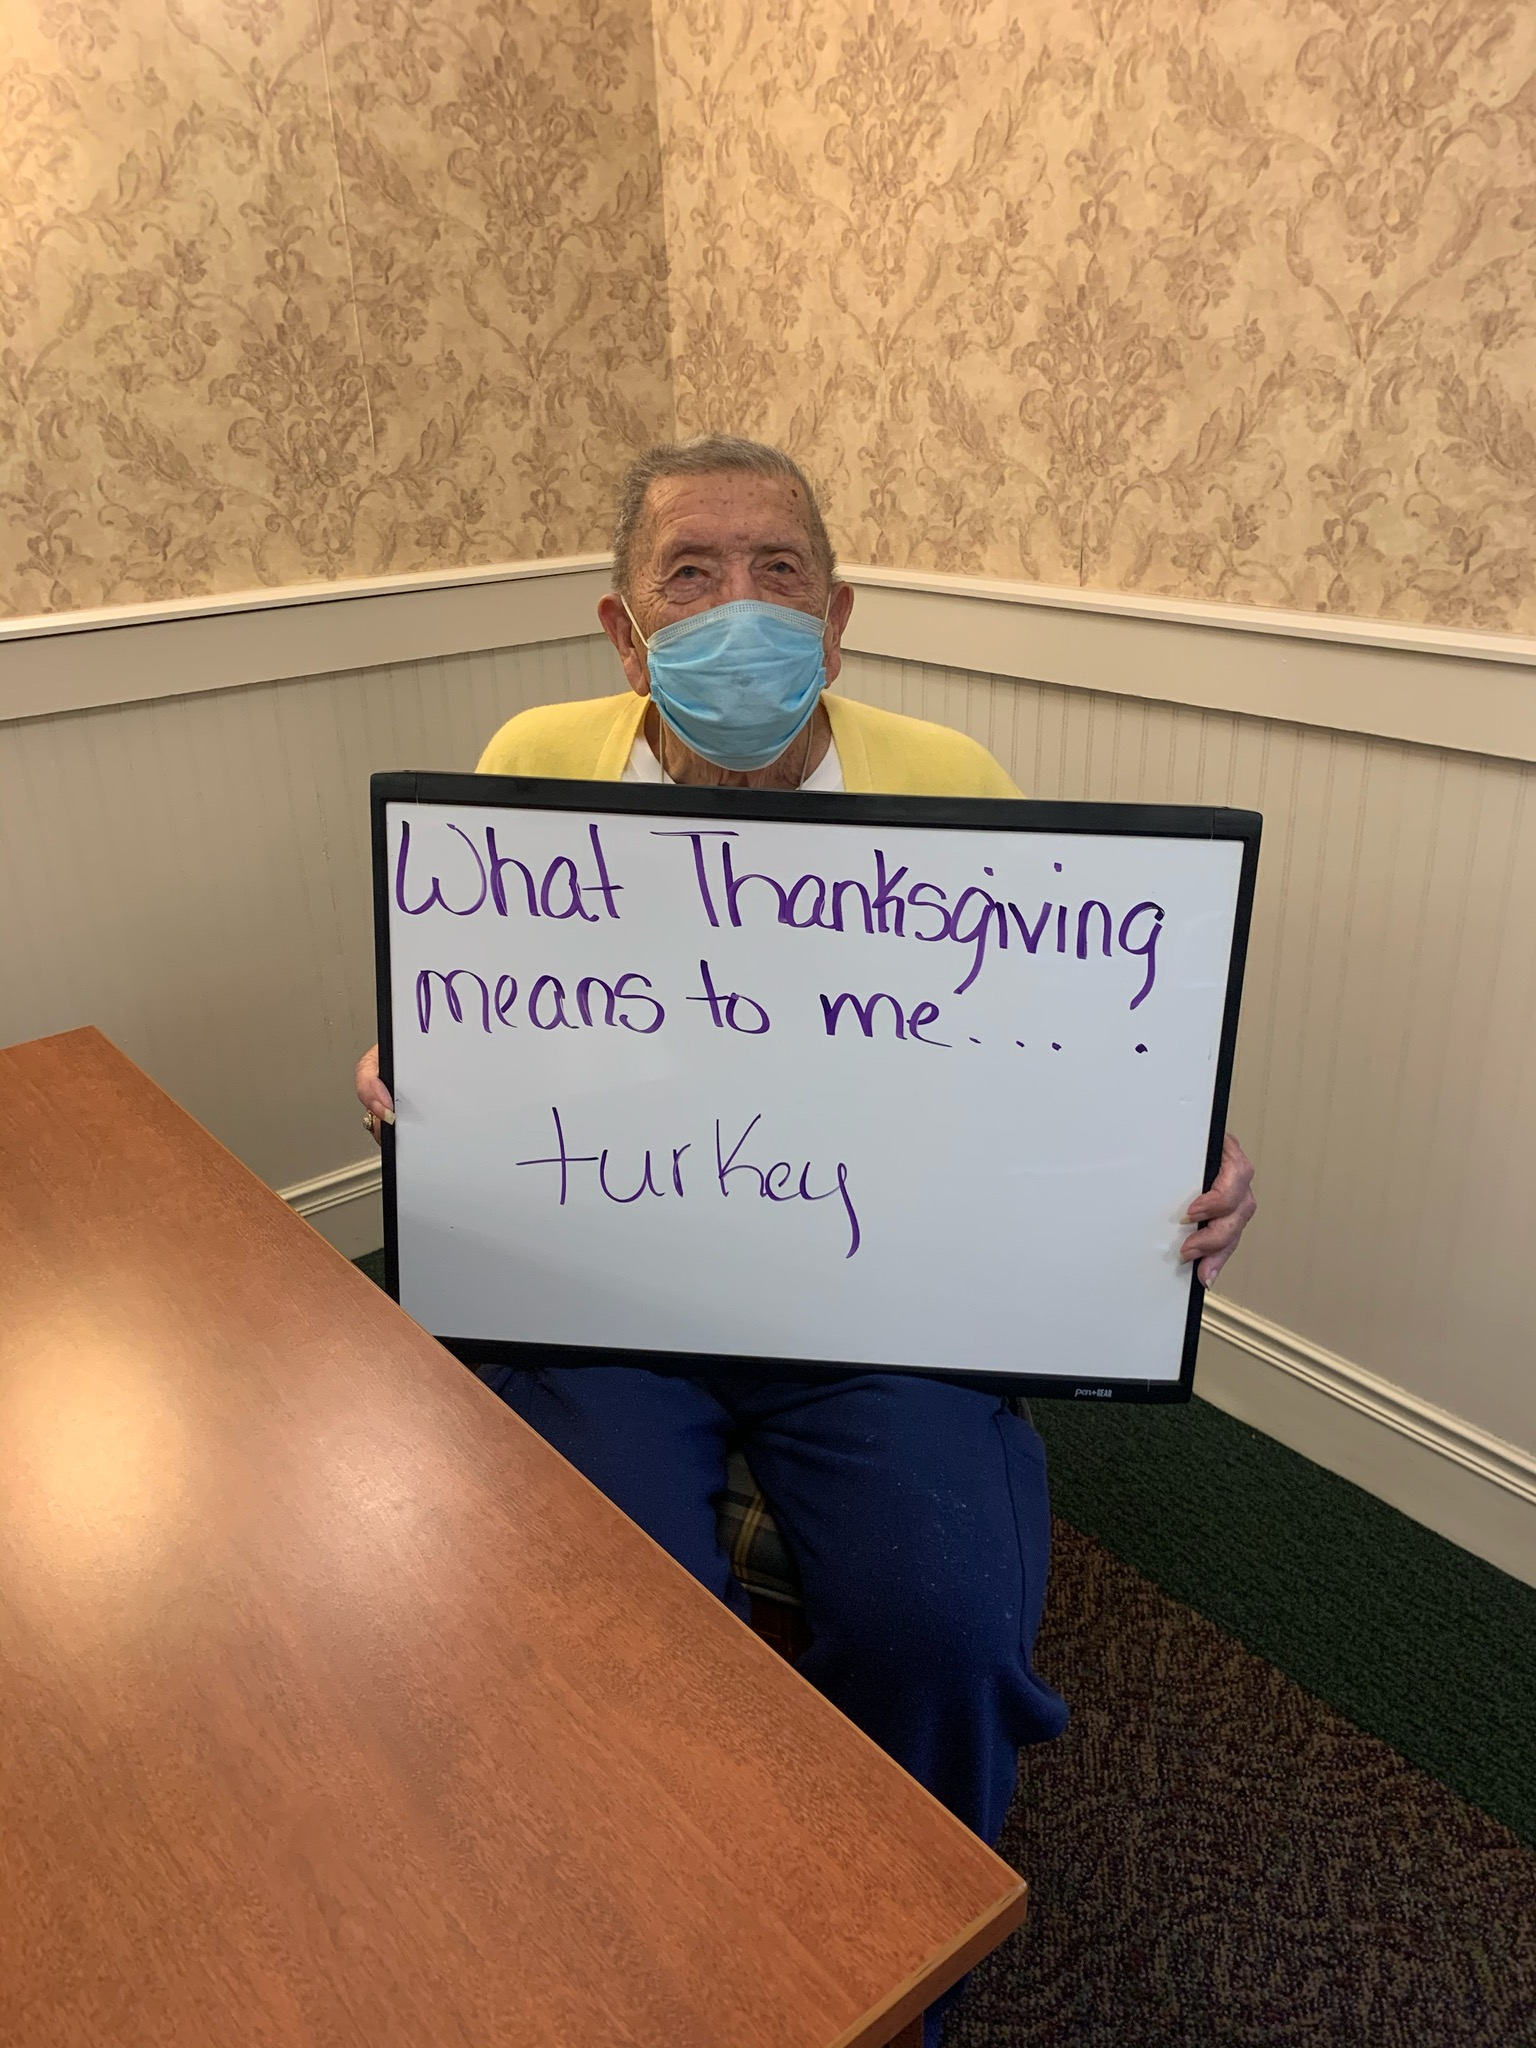 Dale was asked what Thanksgiving means to him, he response was turkey.